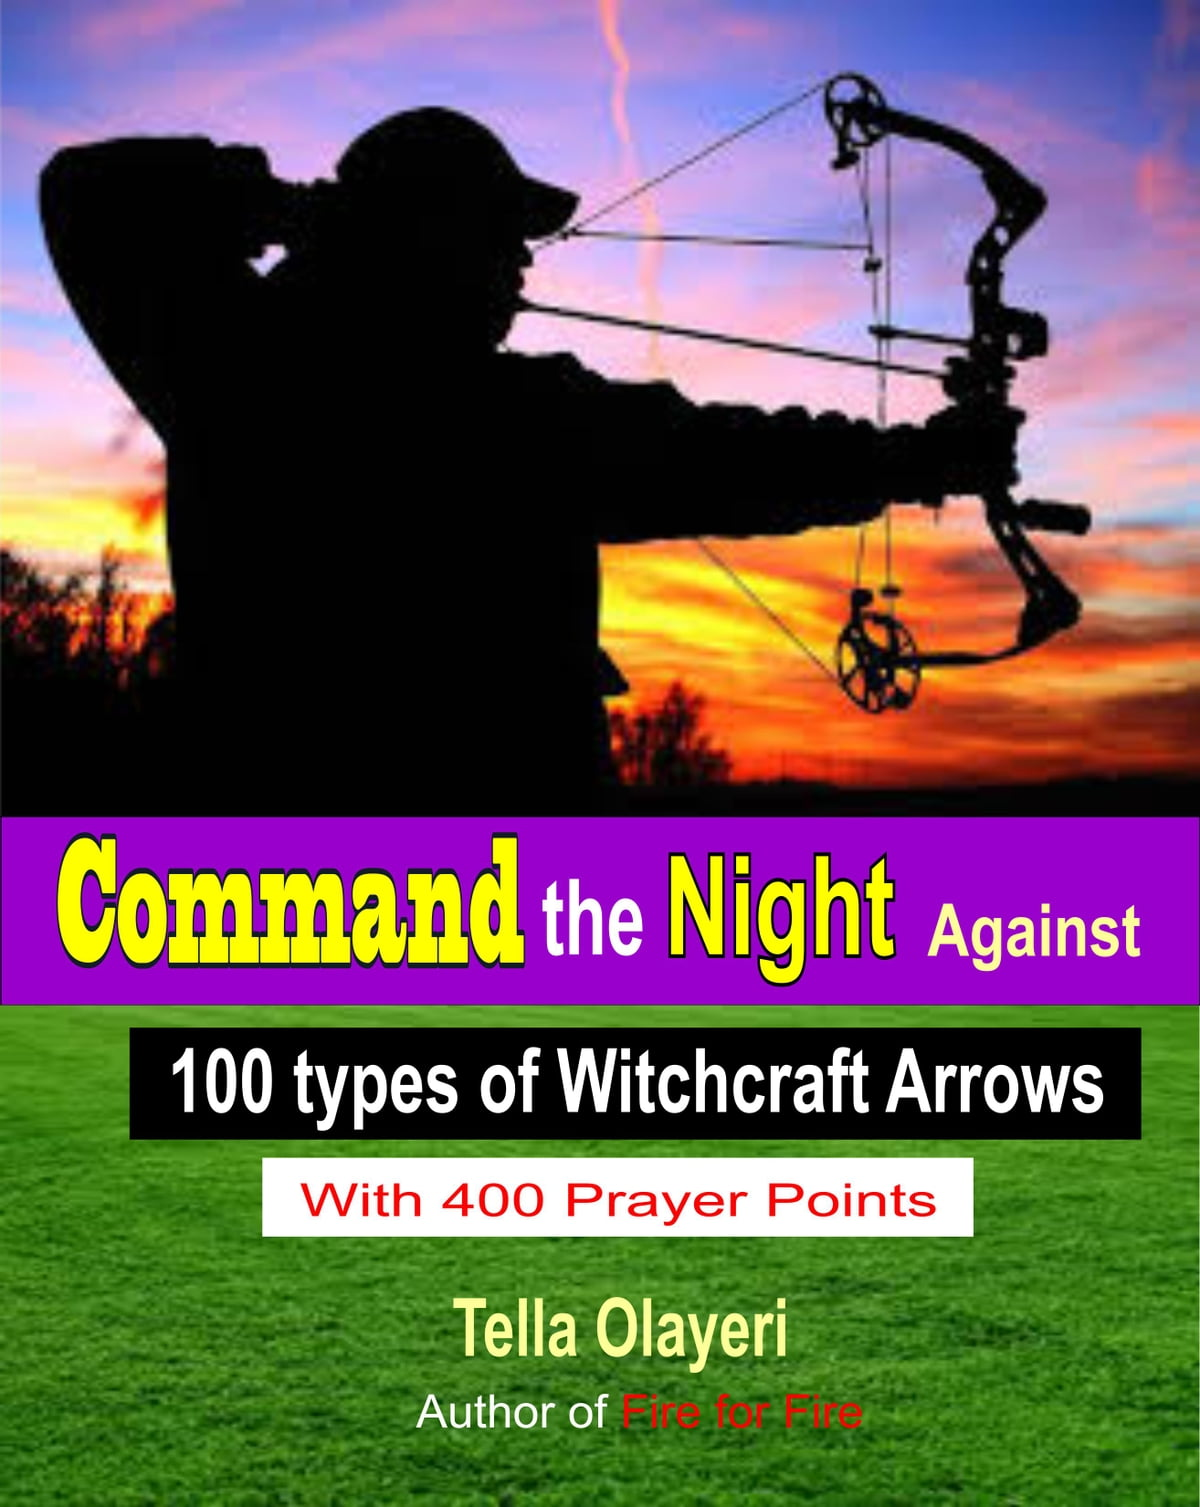 Command the Night Against 100 types of Witchcraft Arrows eBook by Tella  Olayeri - Rakuten Kobo